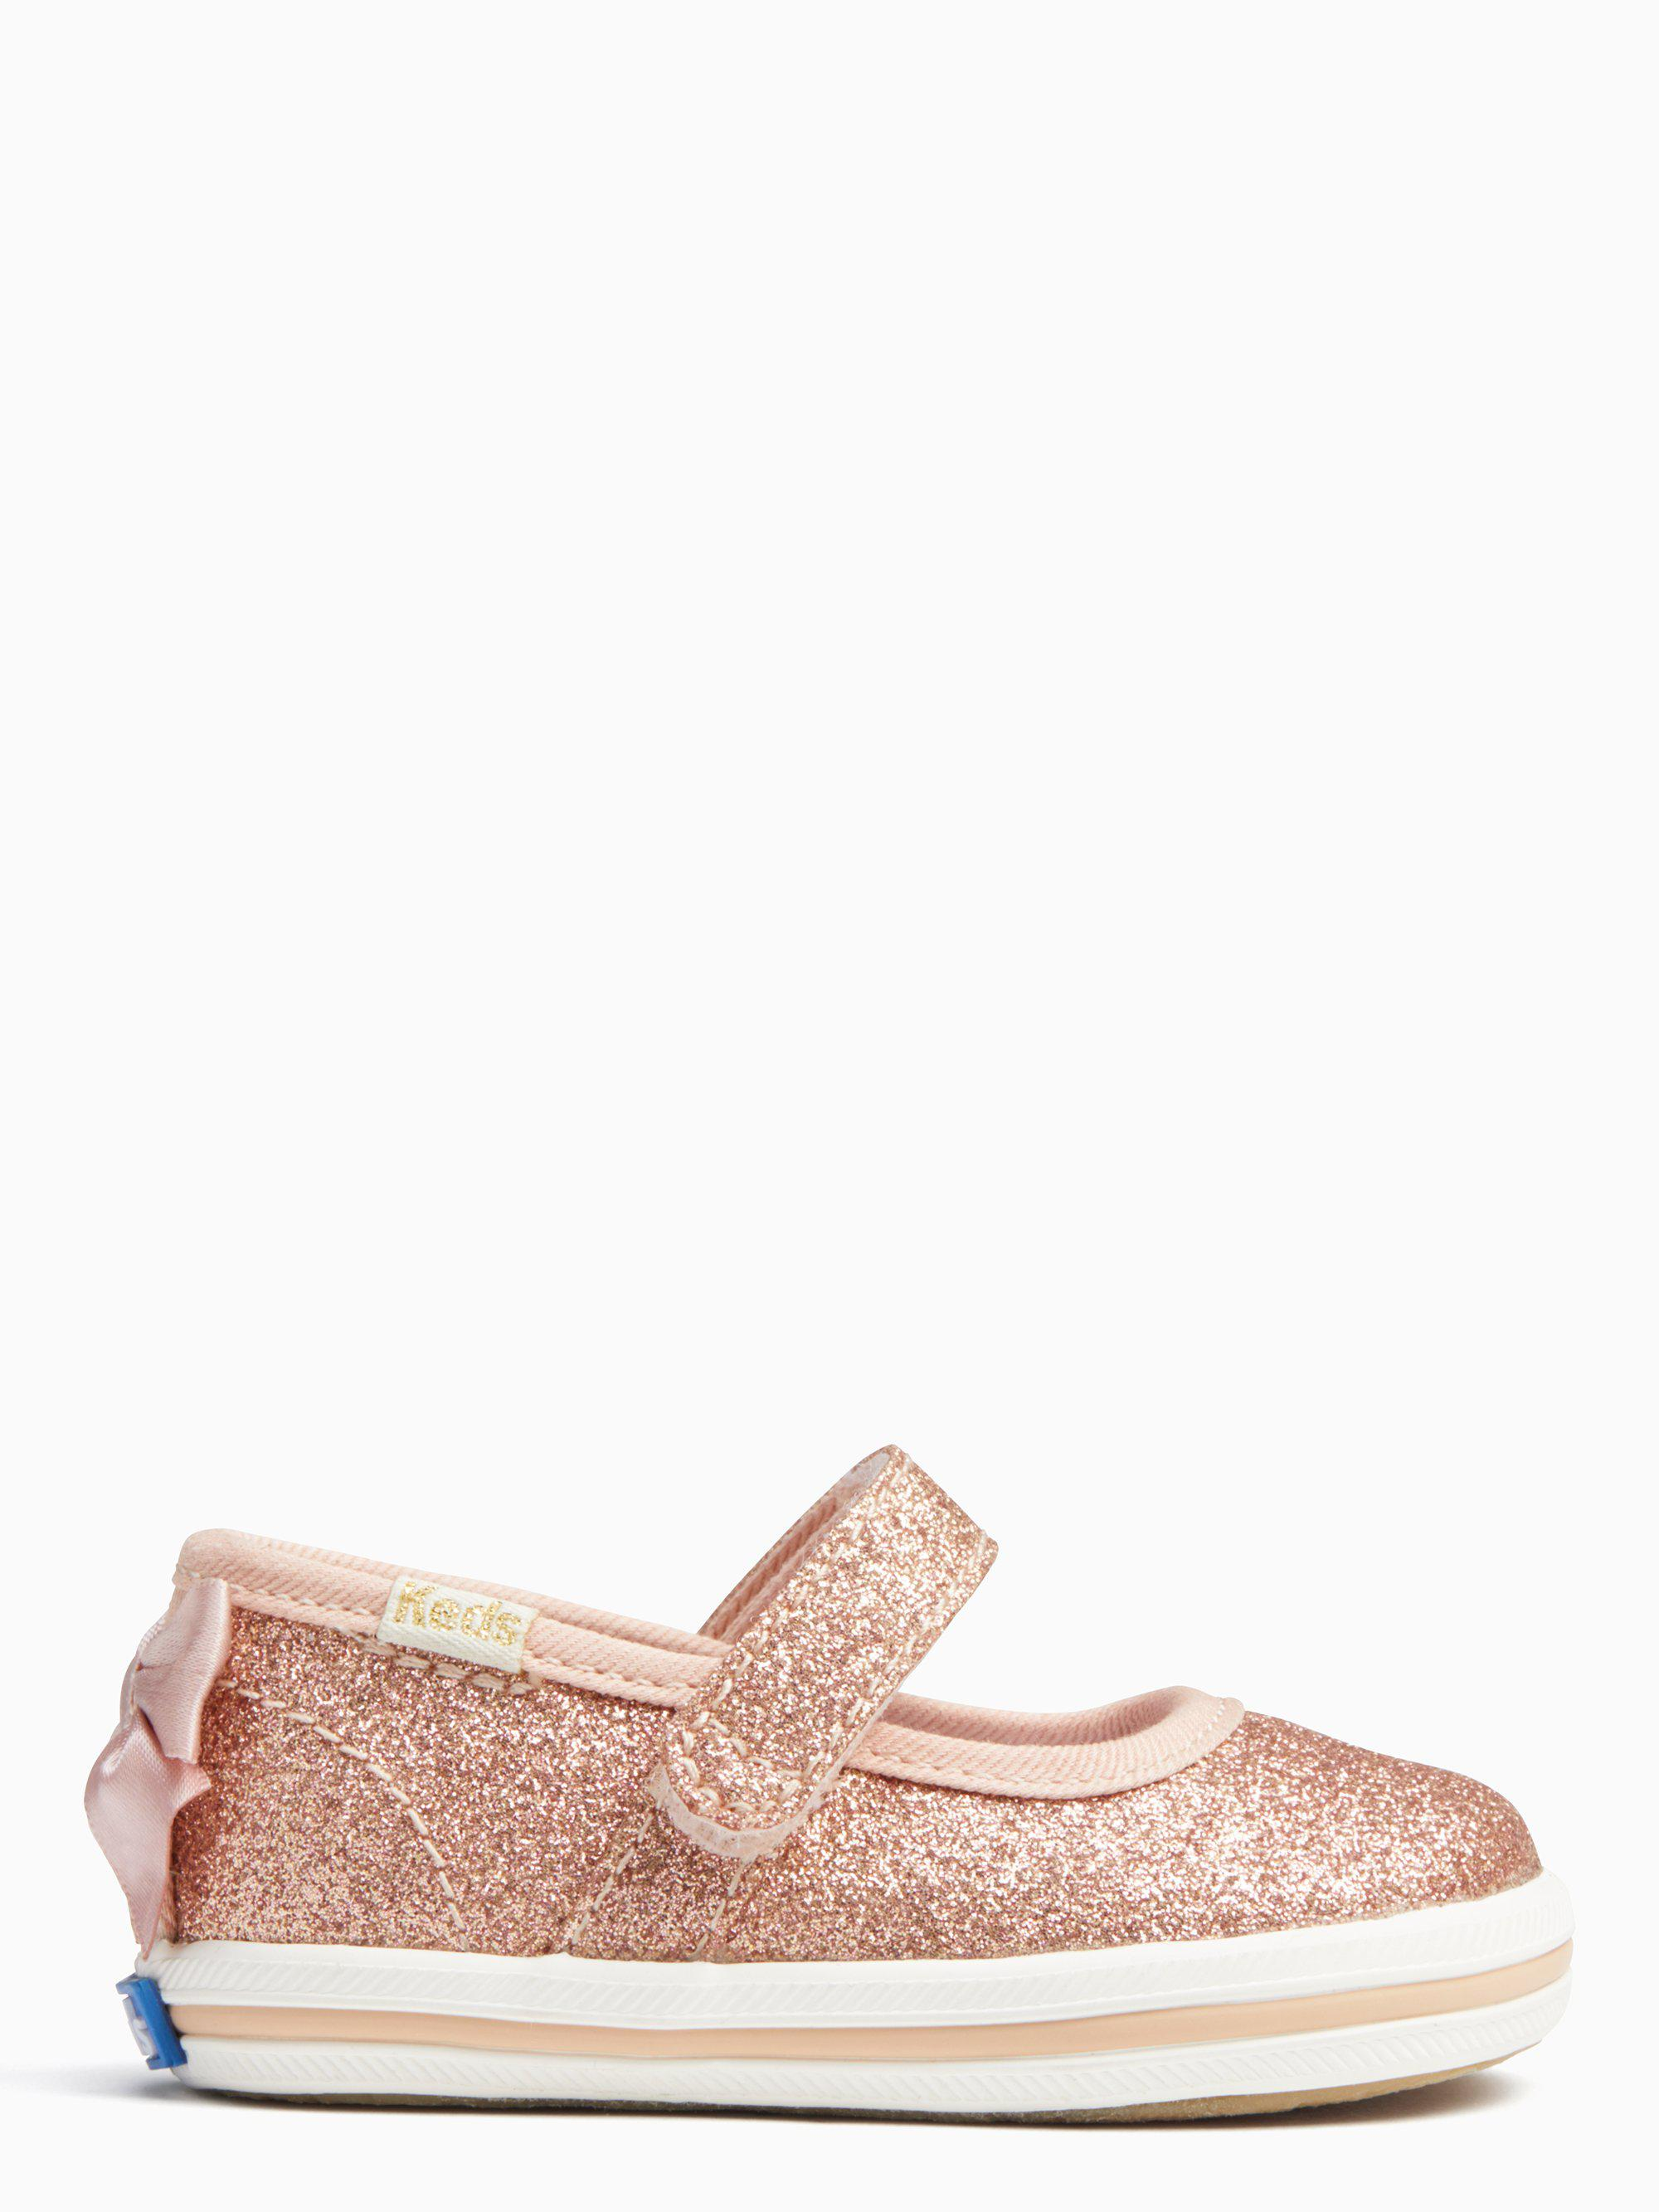 9d2cd3c94a3 Lyst - Kate Spade Keds X New York Sloan Mary Jane Crib Sneakers in Pink